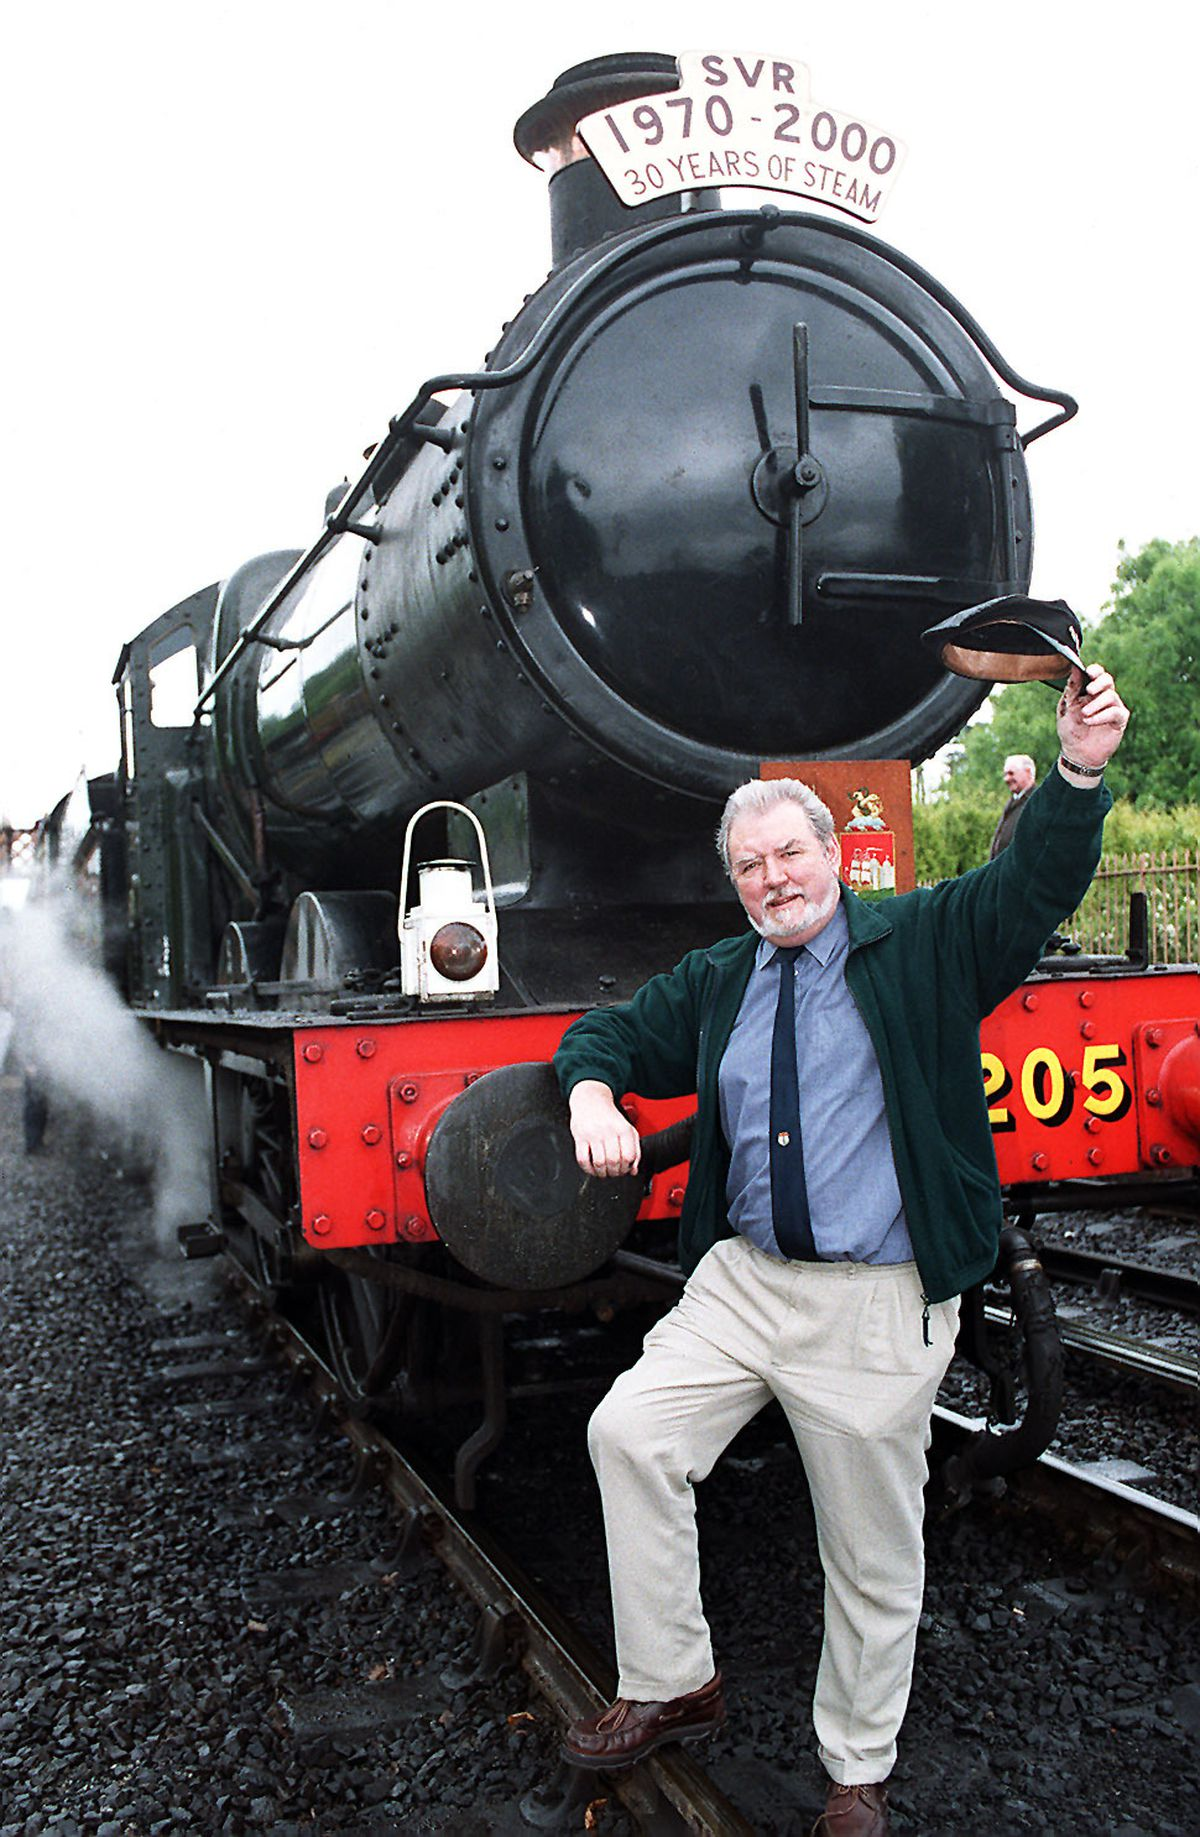 John with the train on its 30th anniversary